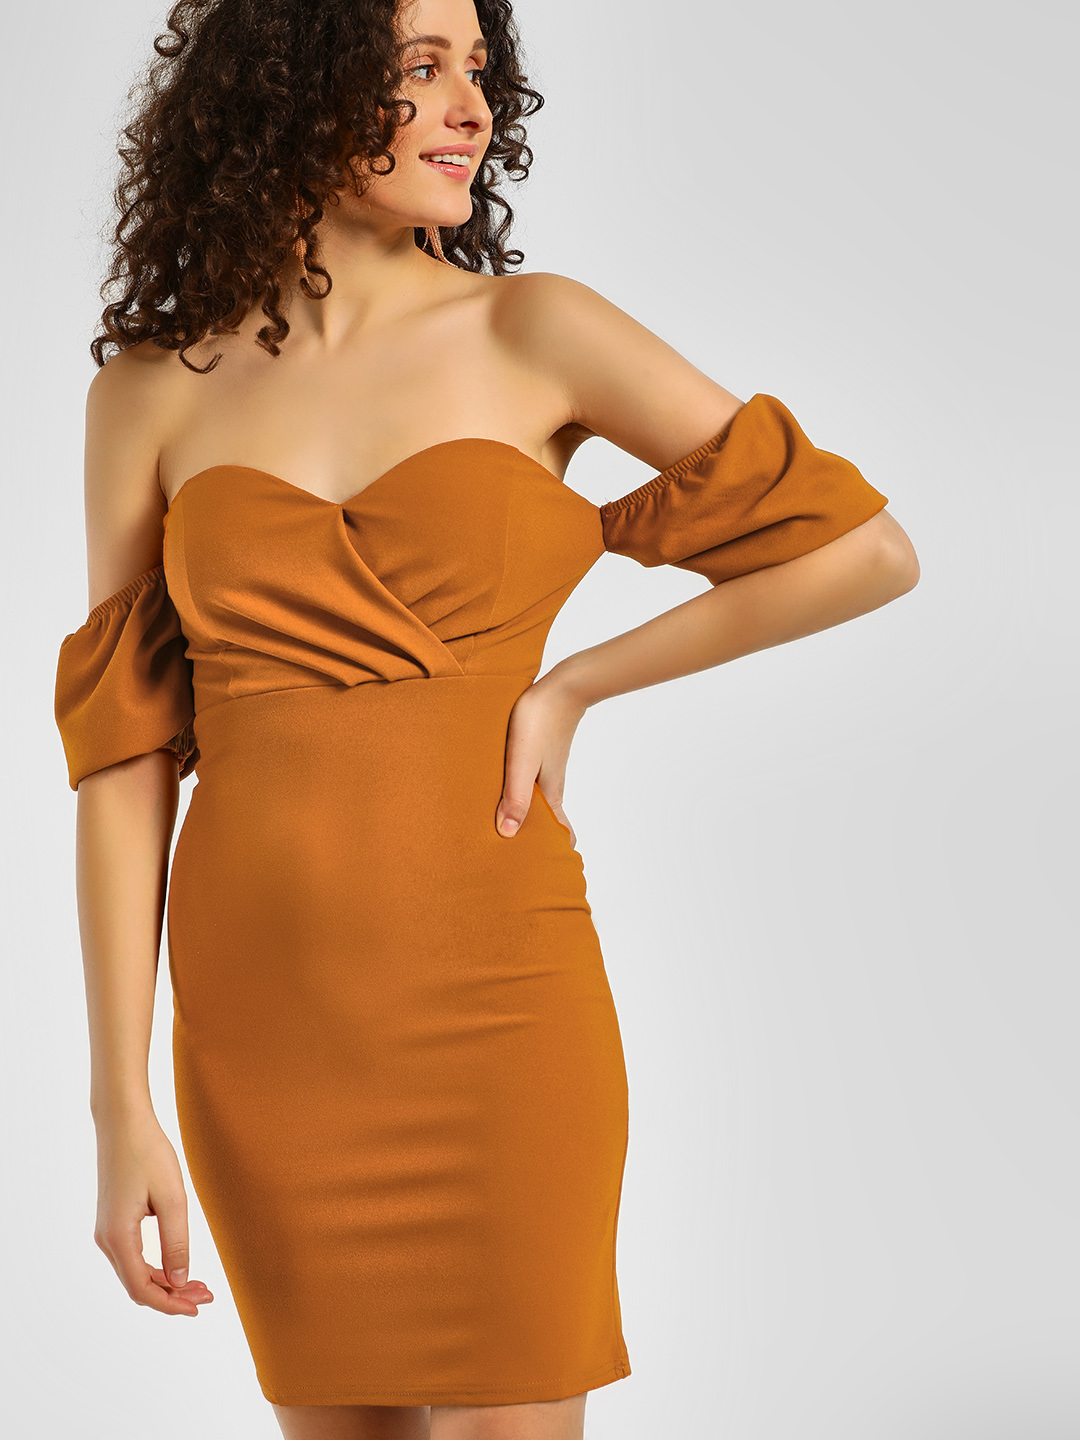 Iris Orange Sweetheart Wrap Off-Shoulder Dress 1